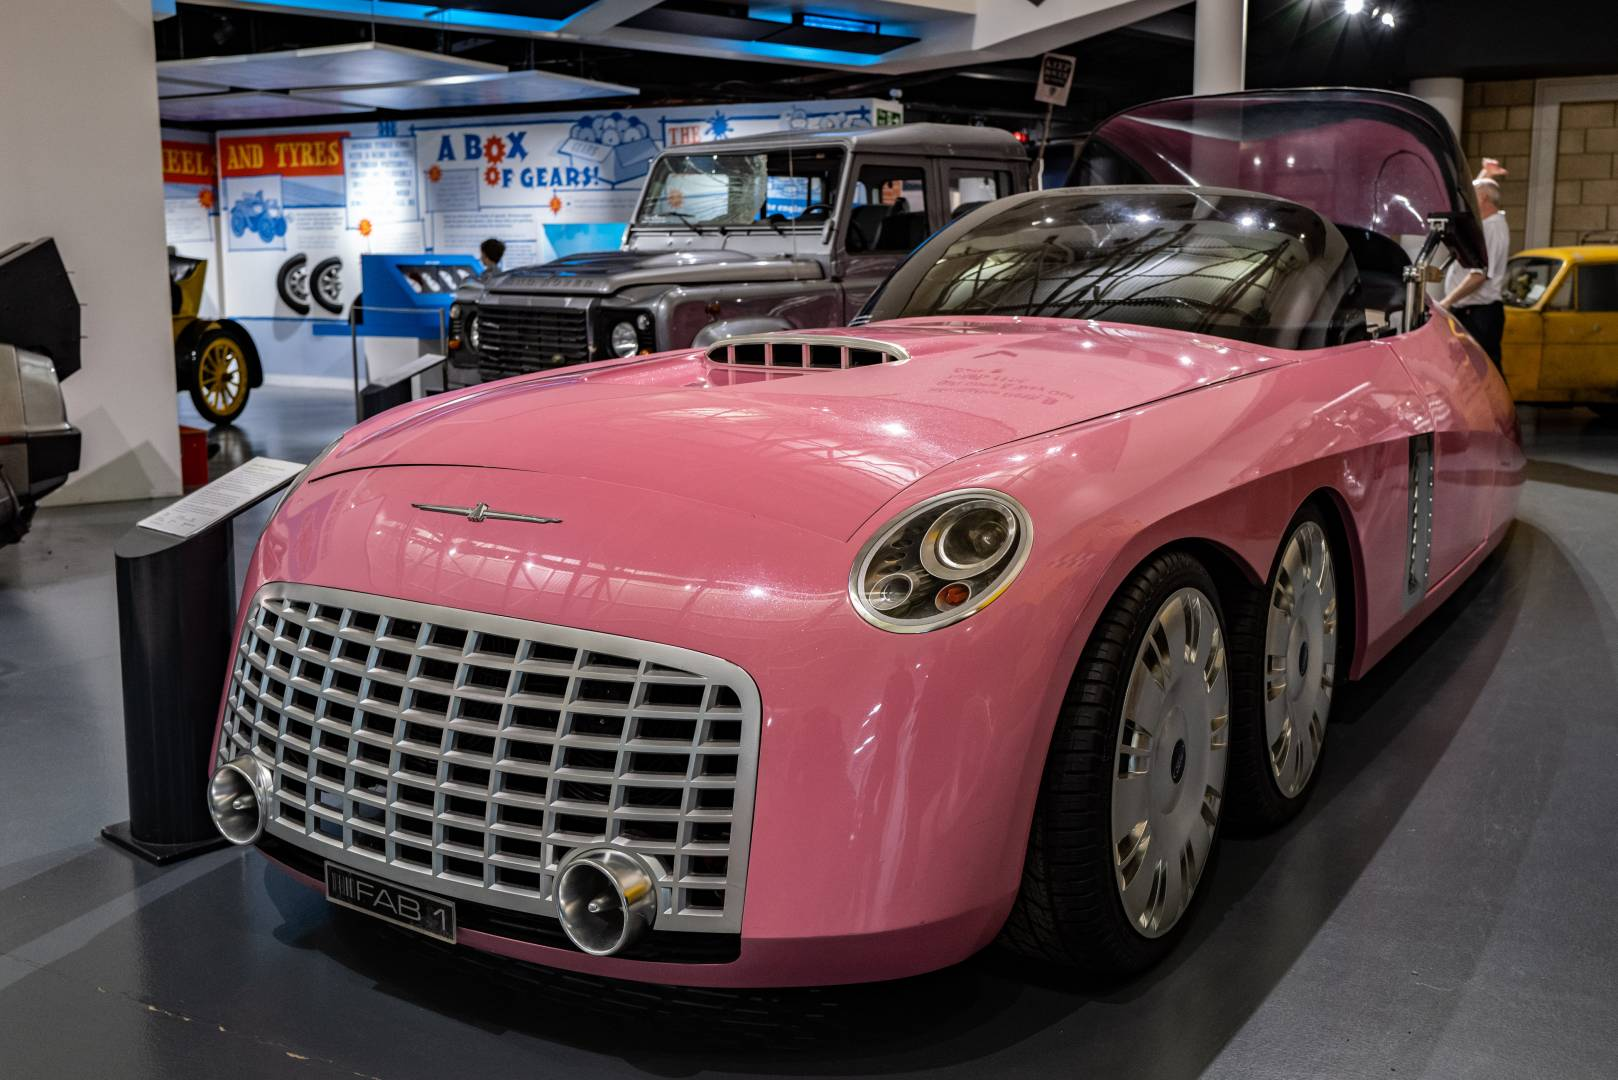 Lady Penelope's FAB 1 car from the 1960s television series Thunderbirds. Below, a futuristic cockpit for Parker the chauffeur. This car was built by Ford and based on the then Ford Thunderbird.